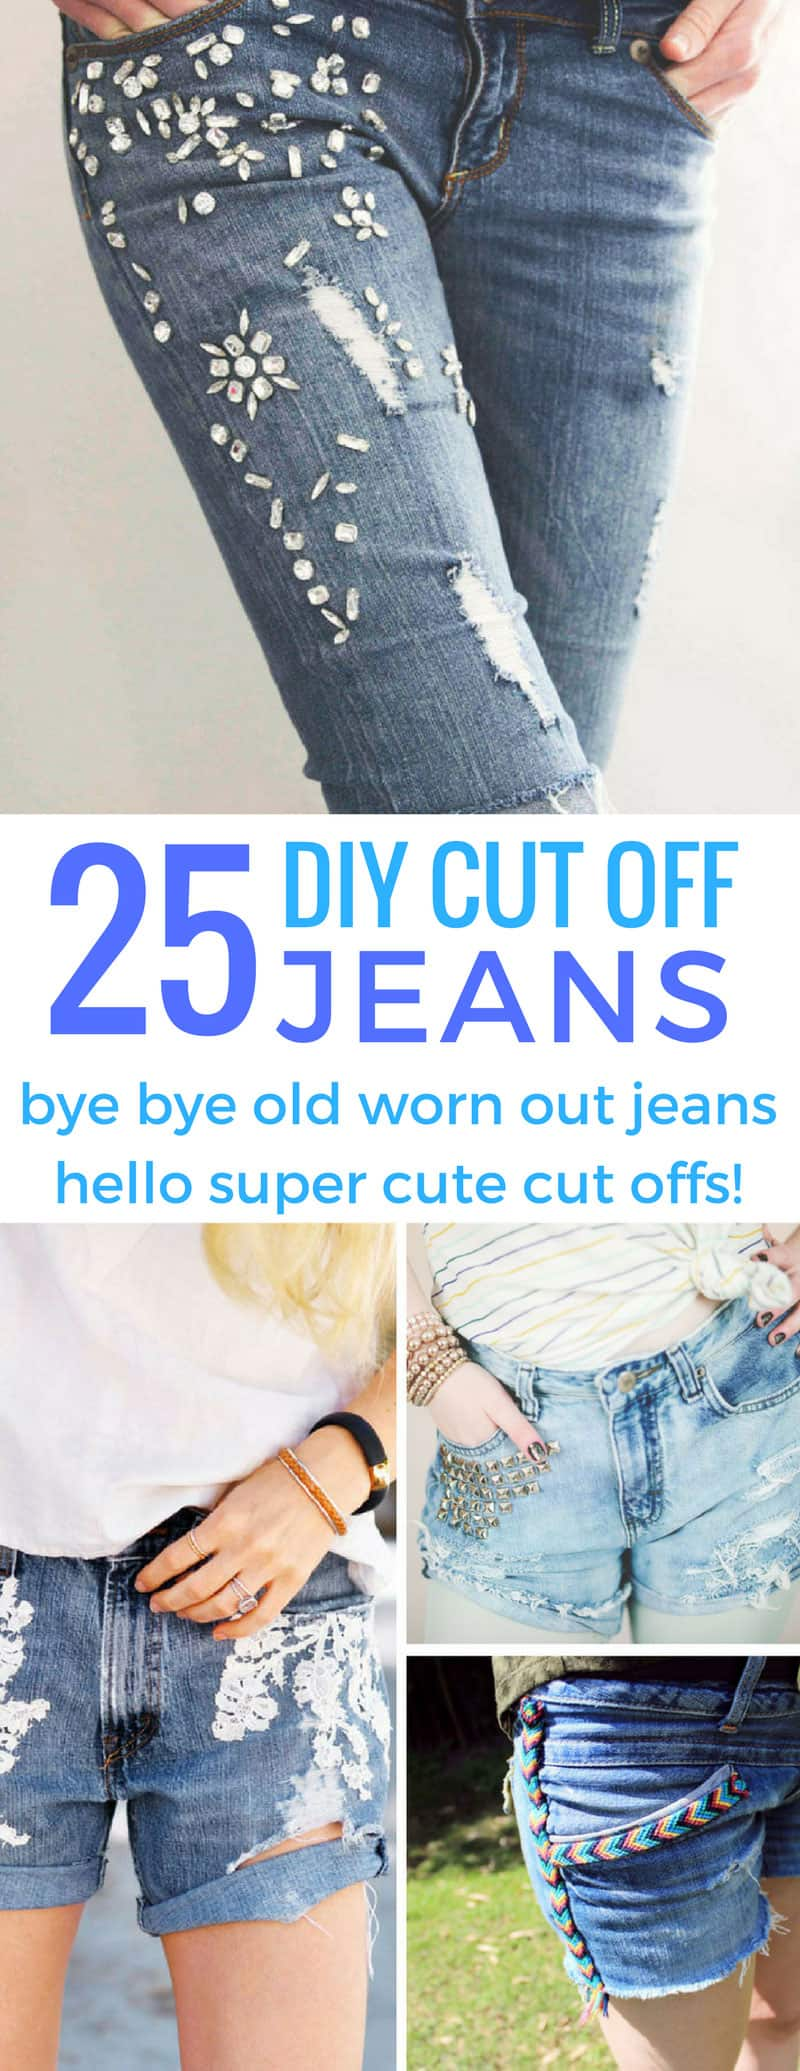 Loving these DIY cut off jeans ideas - now I don't have to throw away my worn out jeans!